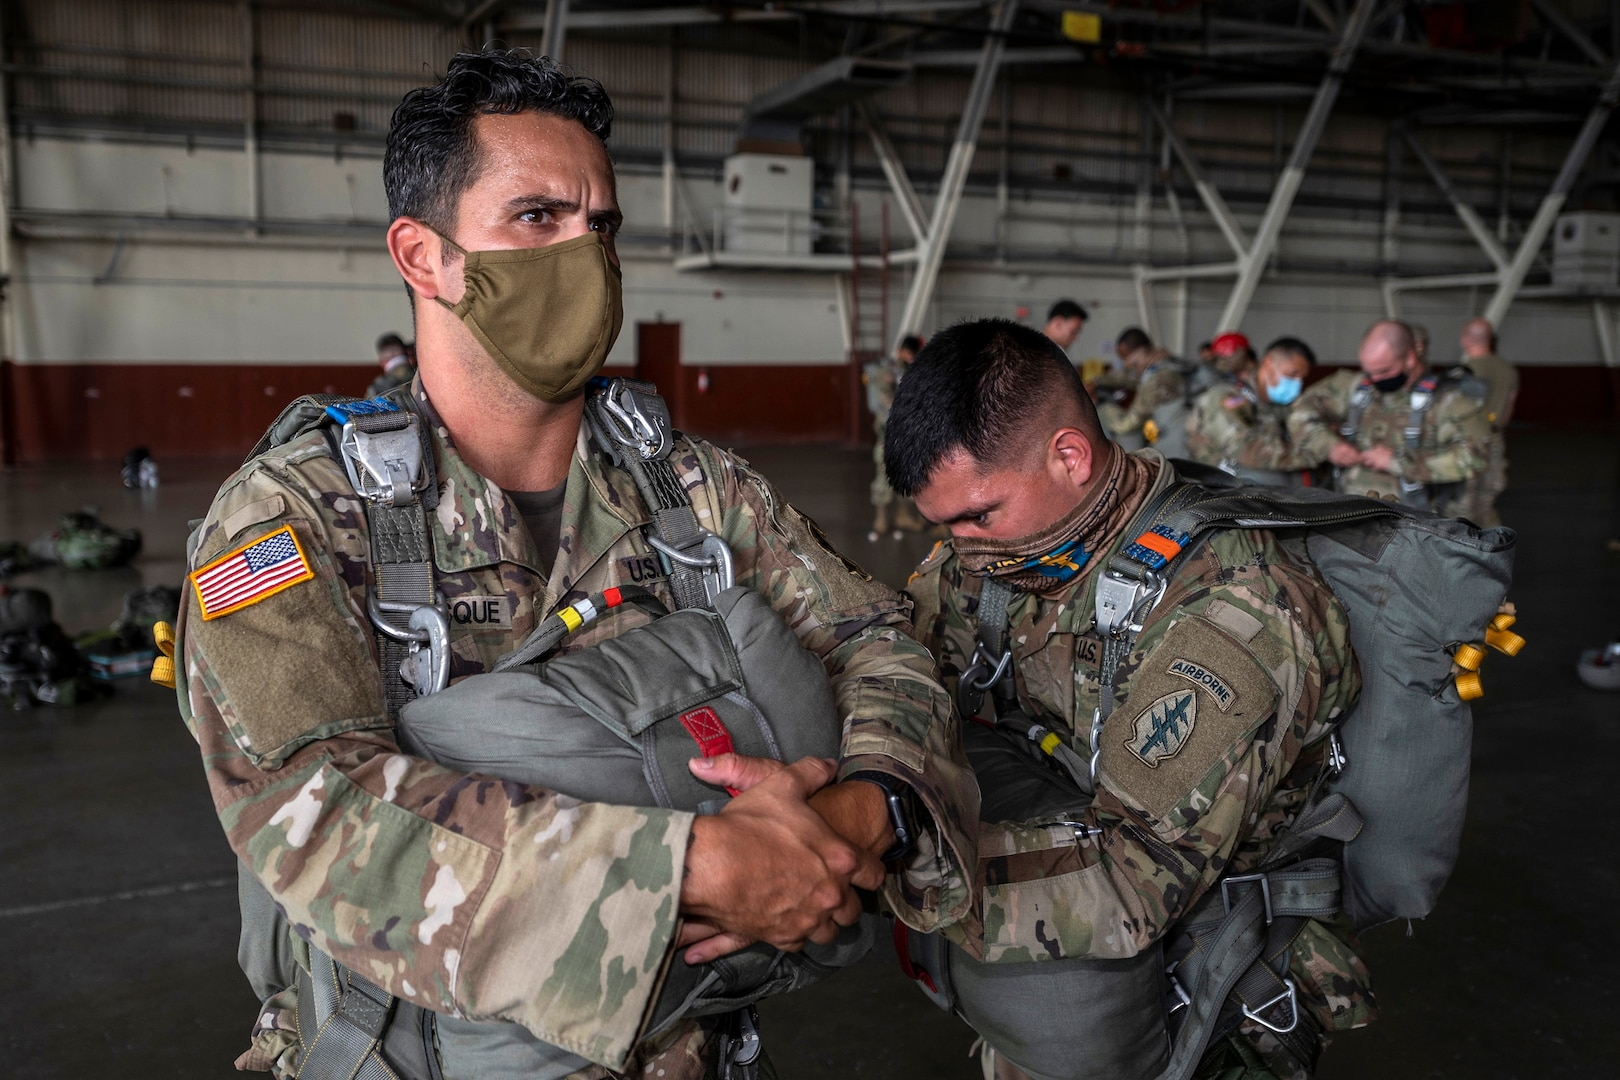 Soldiers prepare to parachute.